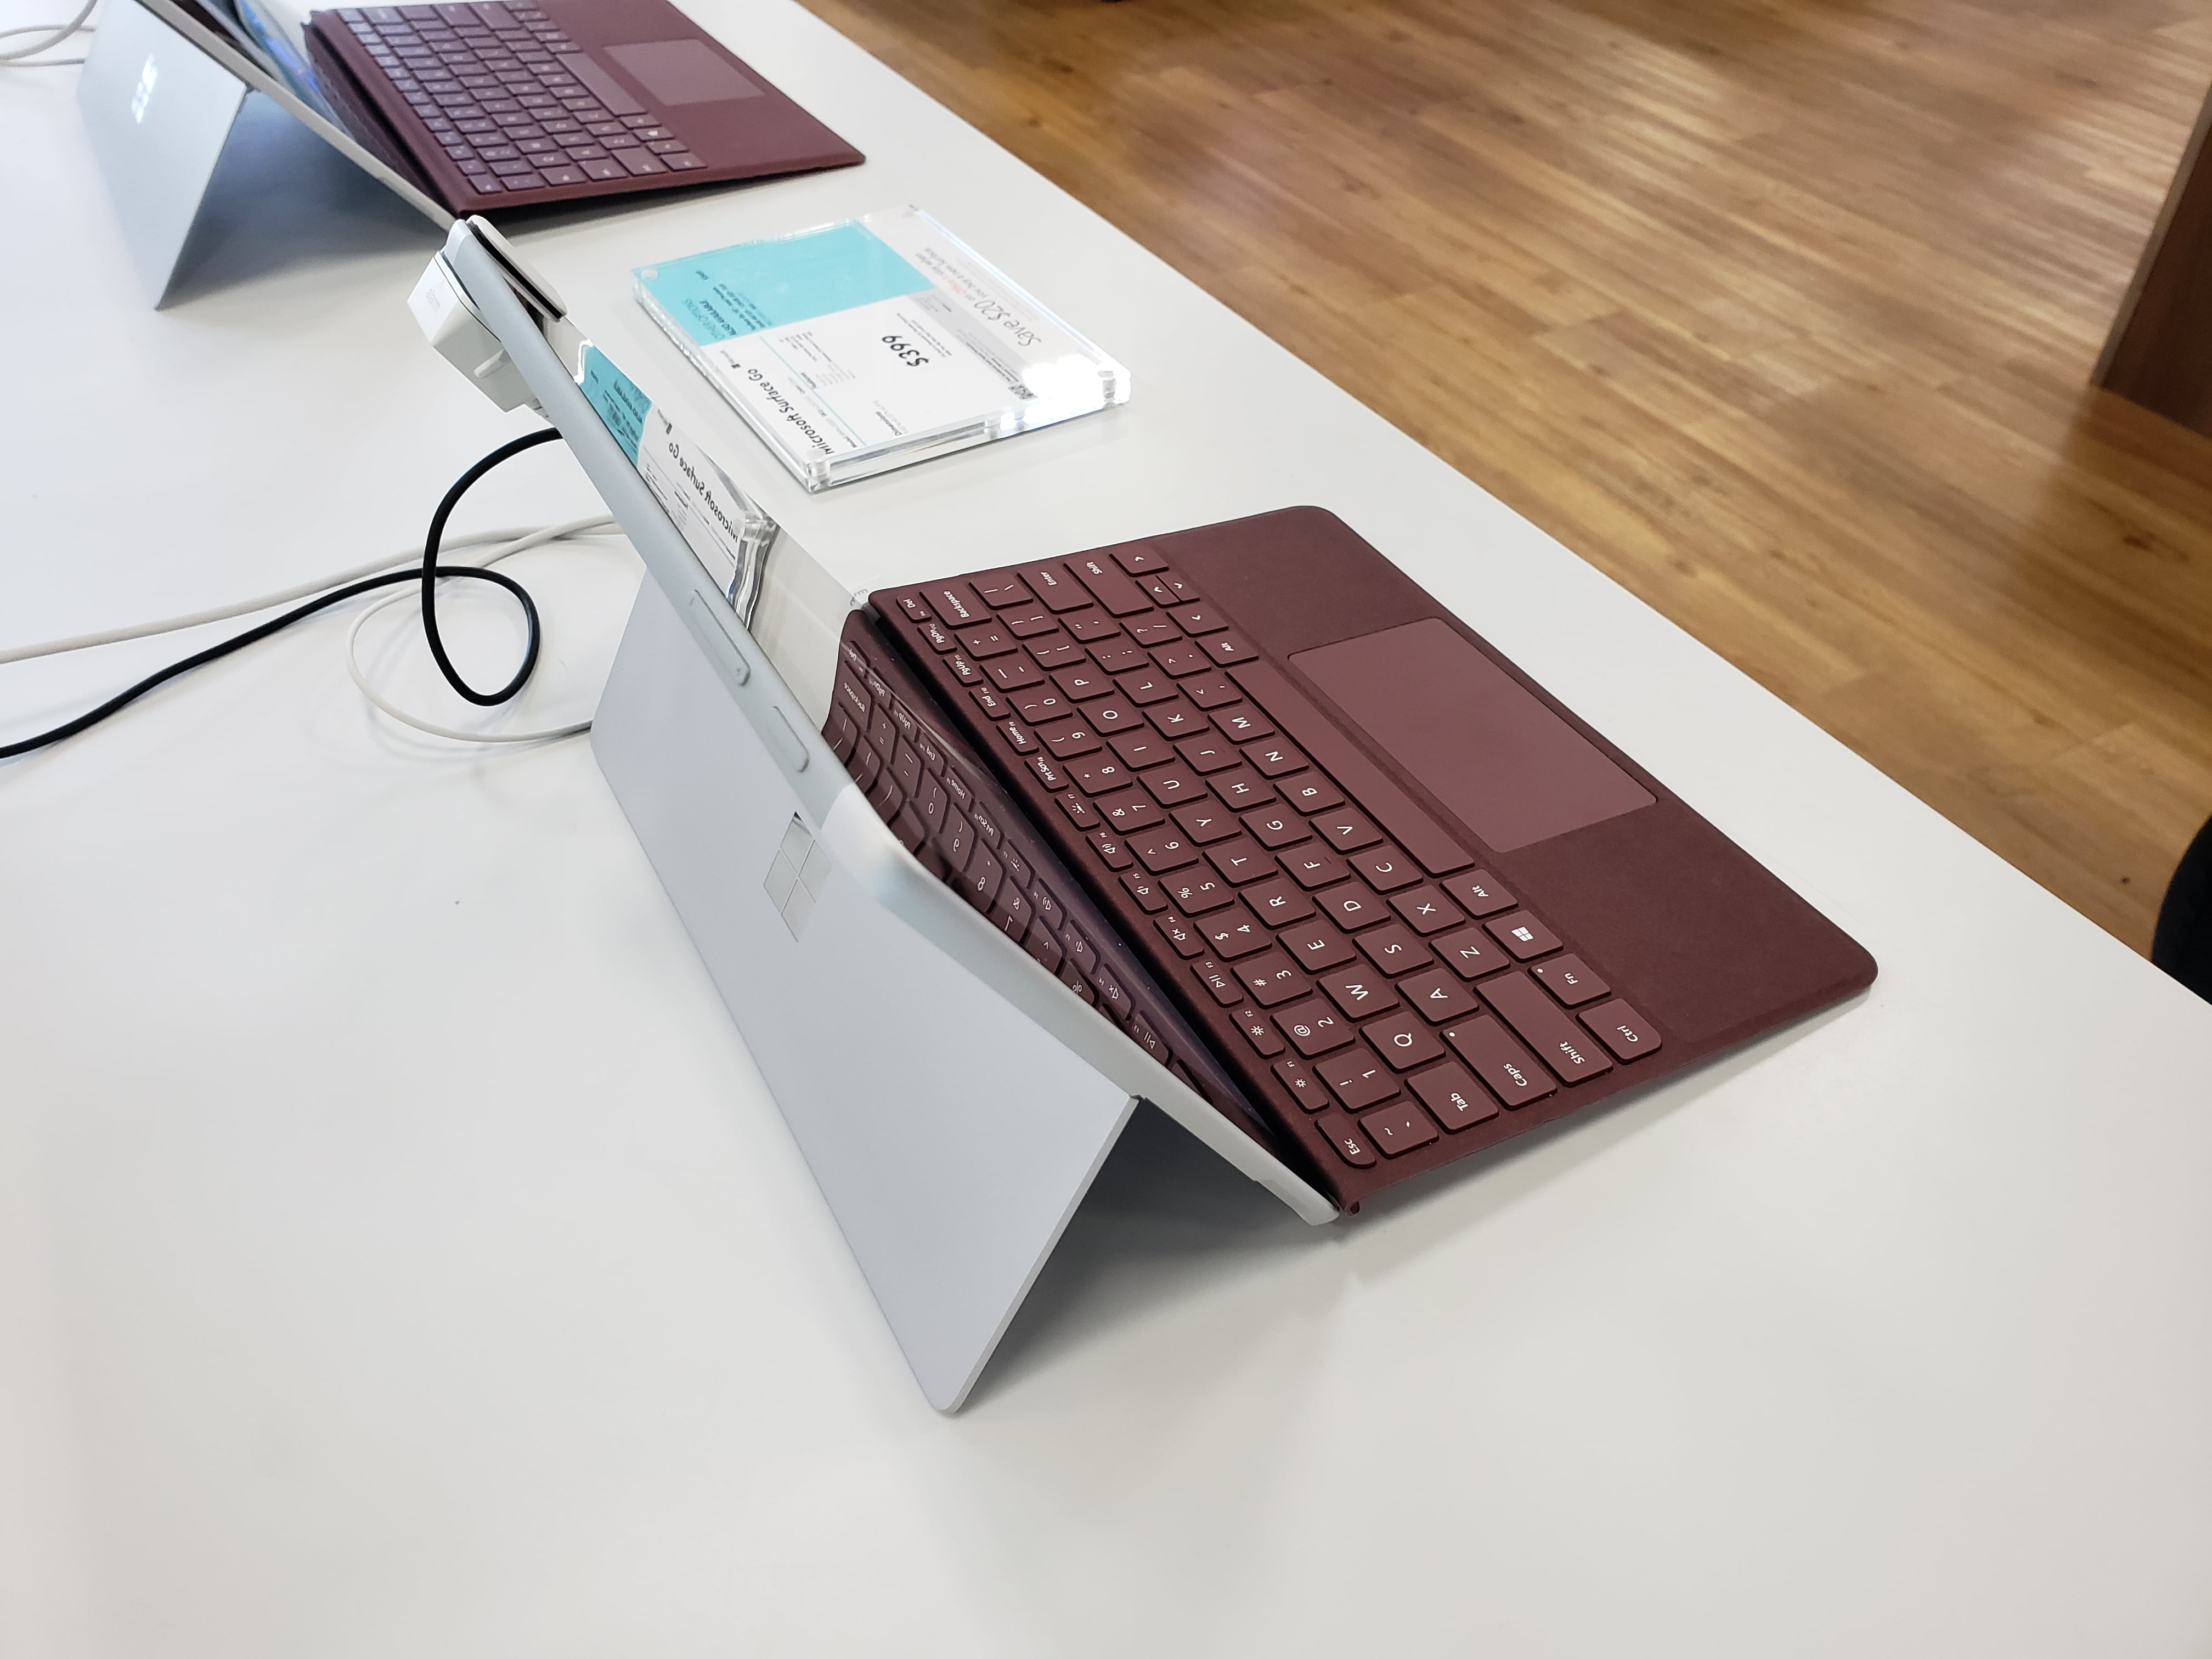 Surface Go at Best Buy